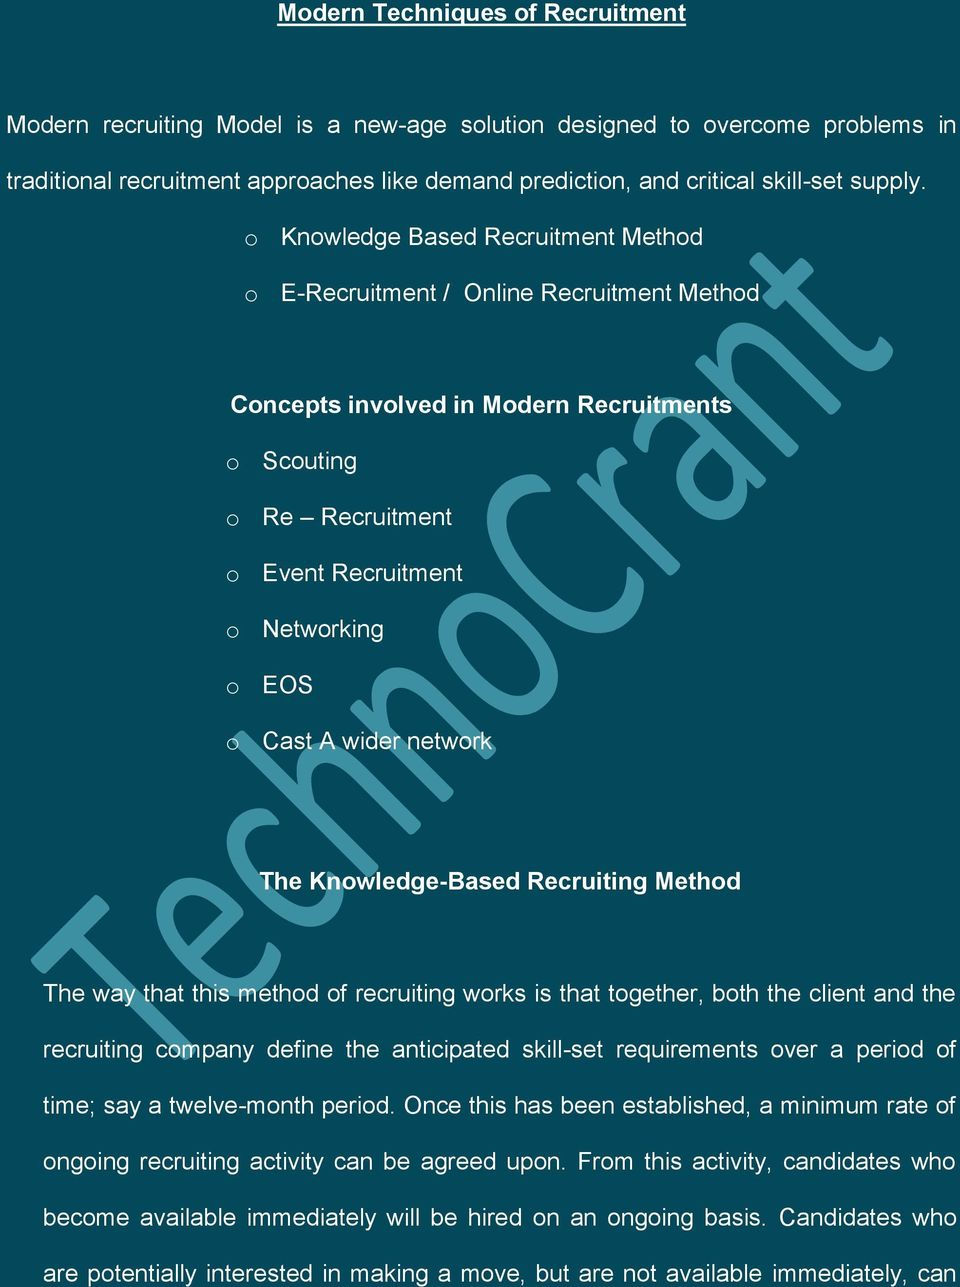 o Knowledge Based Recruitment Method o E-Recruitment / Online Recruitment Method Concepts involved in Modern Recruitments o Scouting o Re Recruitment o Event Recruitment o Networking o EOS o Cast A